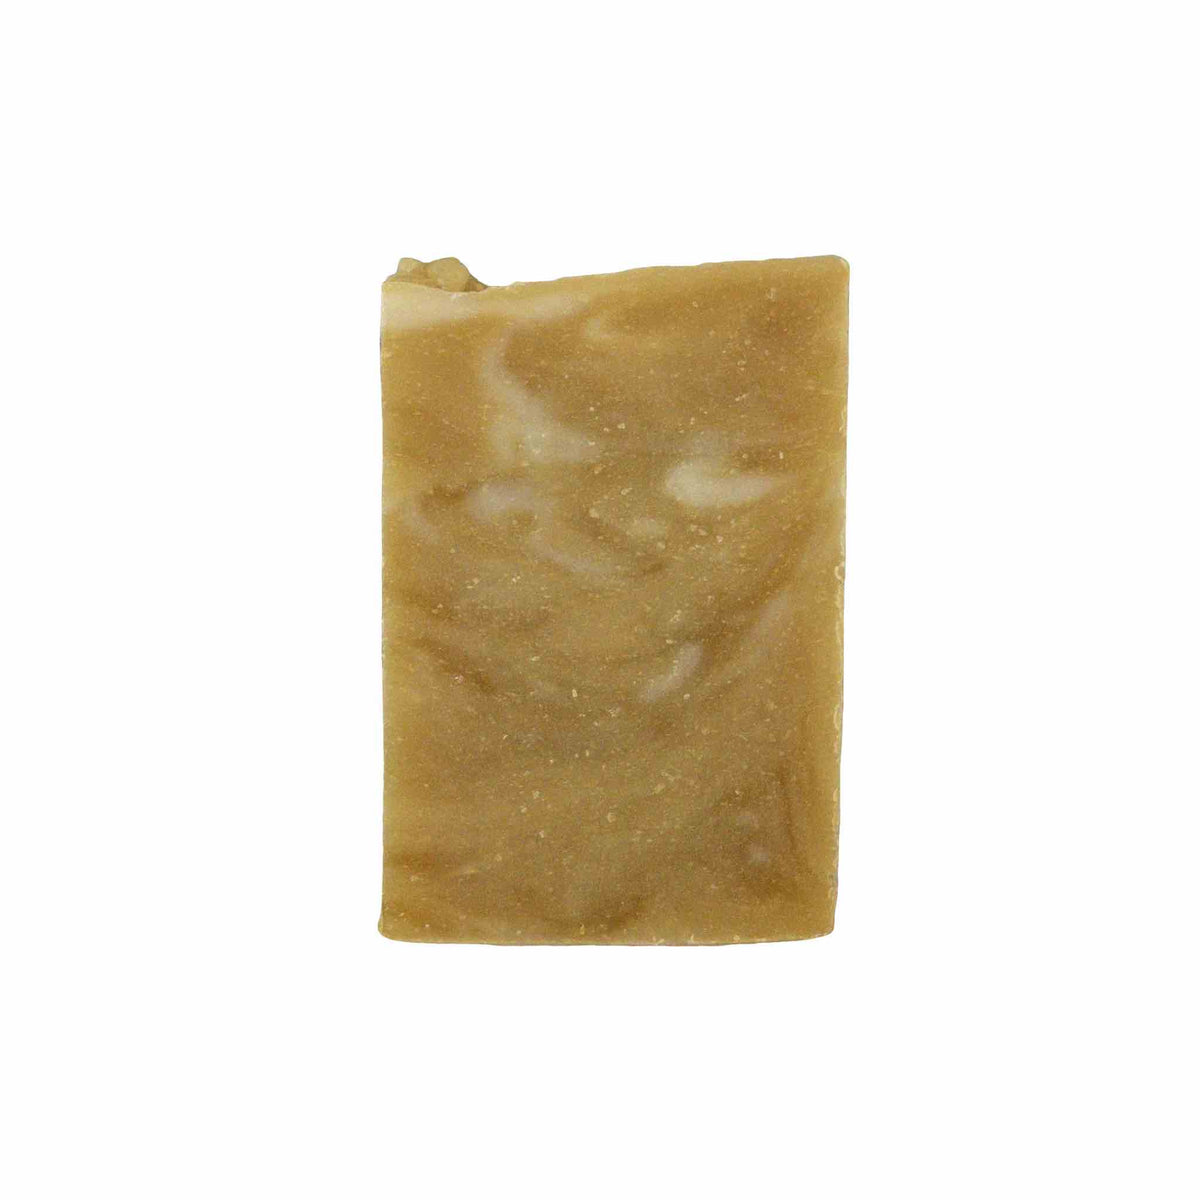 Cedarwood & Patchouli (Tablet Plain)